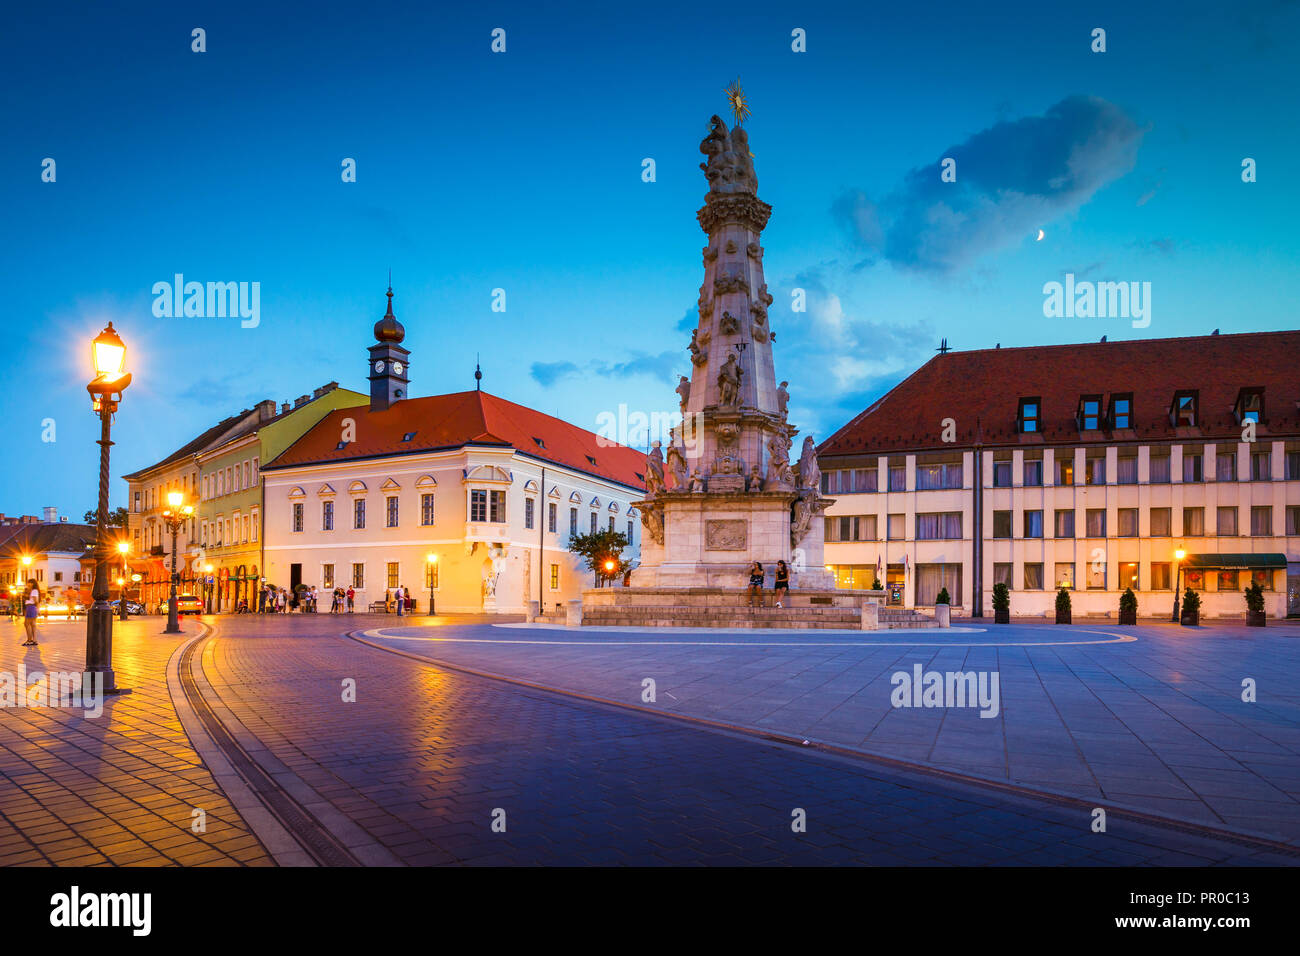 Budapest, Hungary - August 16, 2018: Evening view of Trinity square in historic city centre of Buda, Hungary. - Stock Image